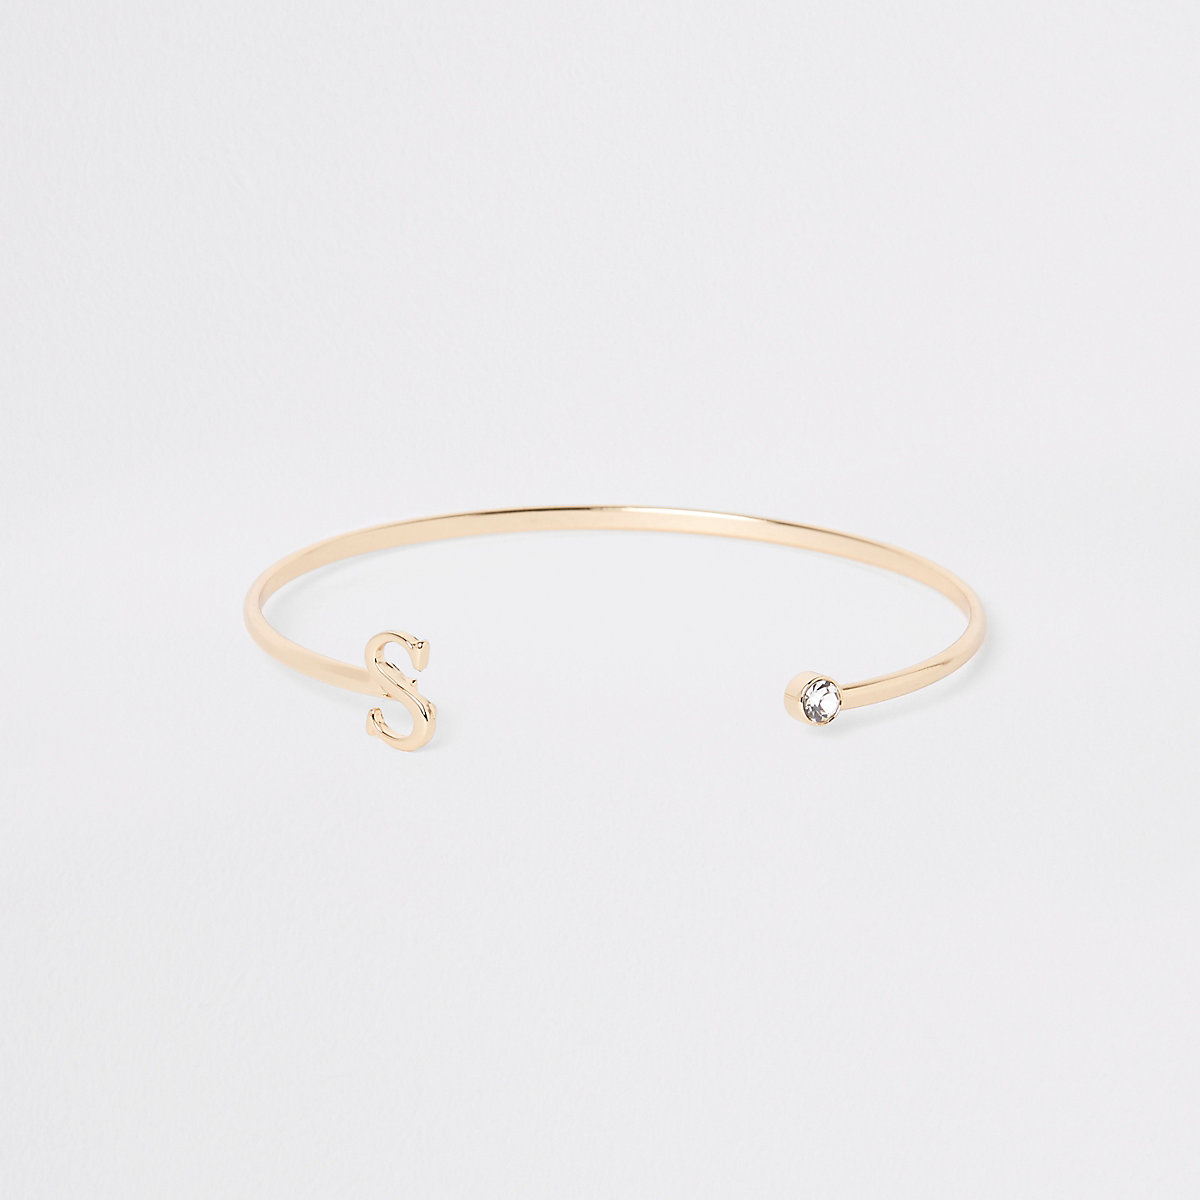 Gold plated 'S' initial cuff bracelet